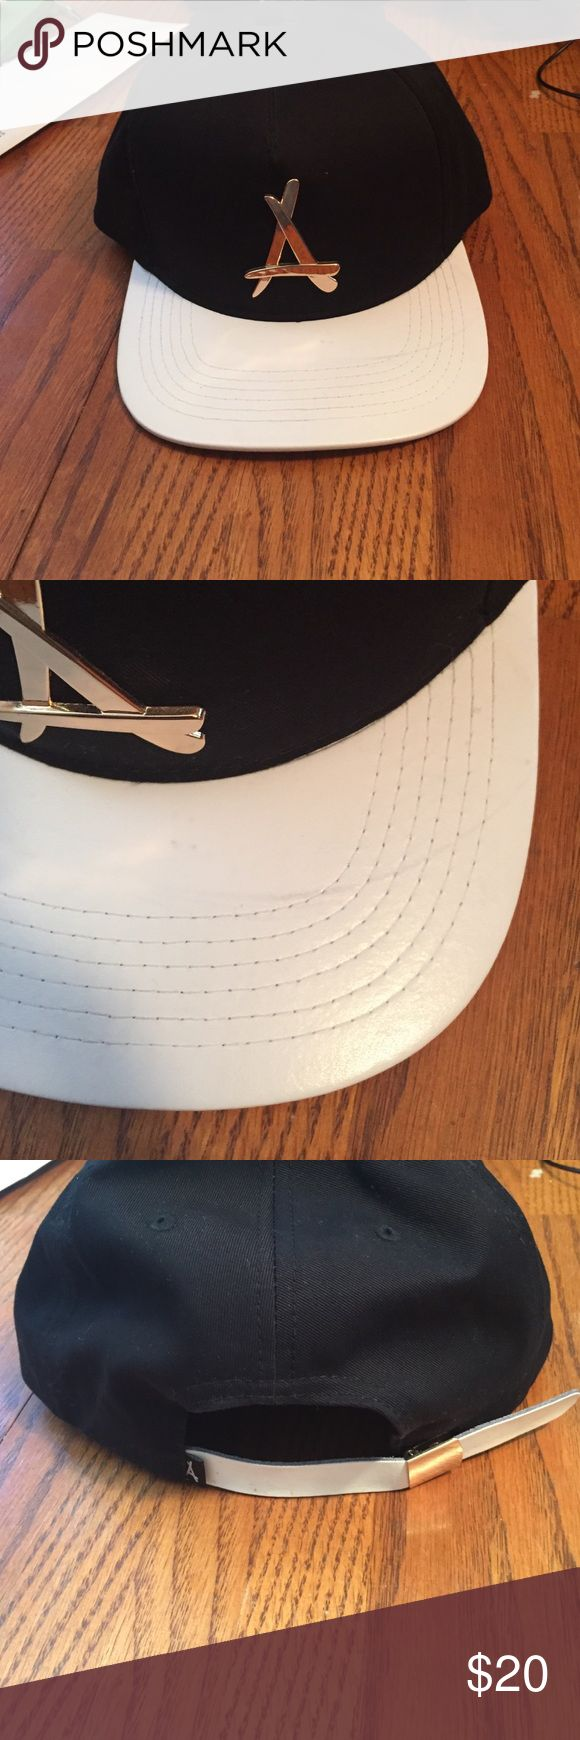 Tha Alumni strapback hat Black strapback with gold A letter on front with a faux leather bill. Worn only once. Has a mark on the bill. Tha Alumni Accessories Hats